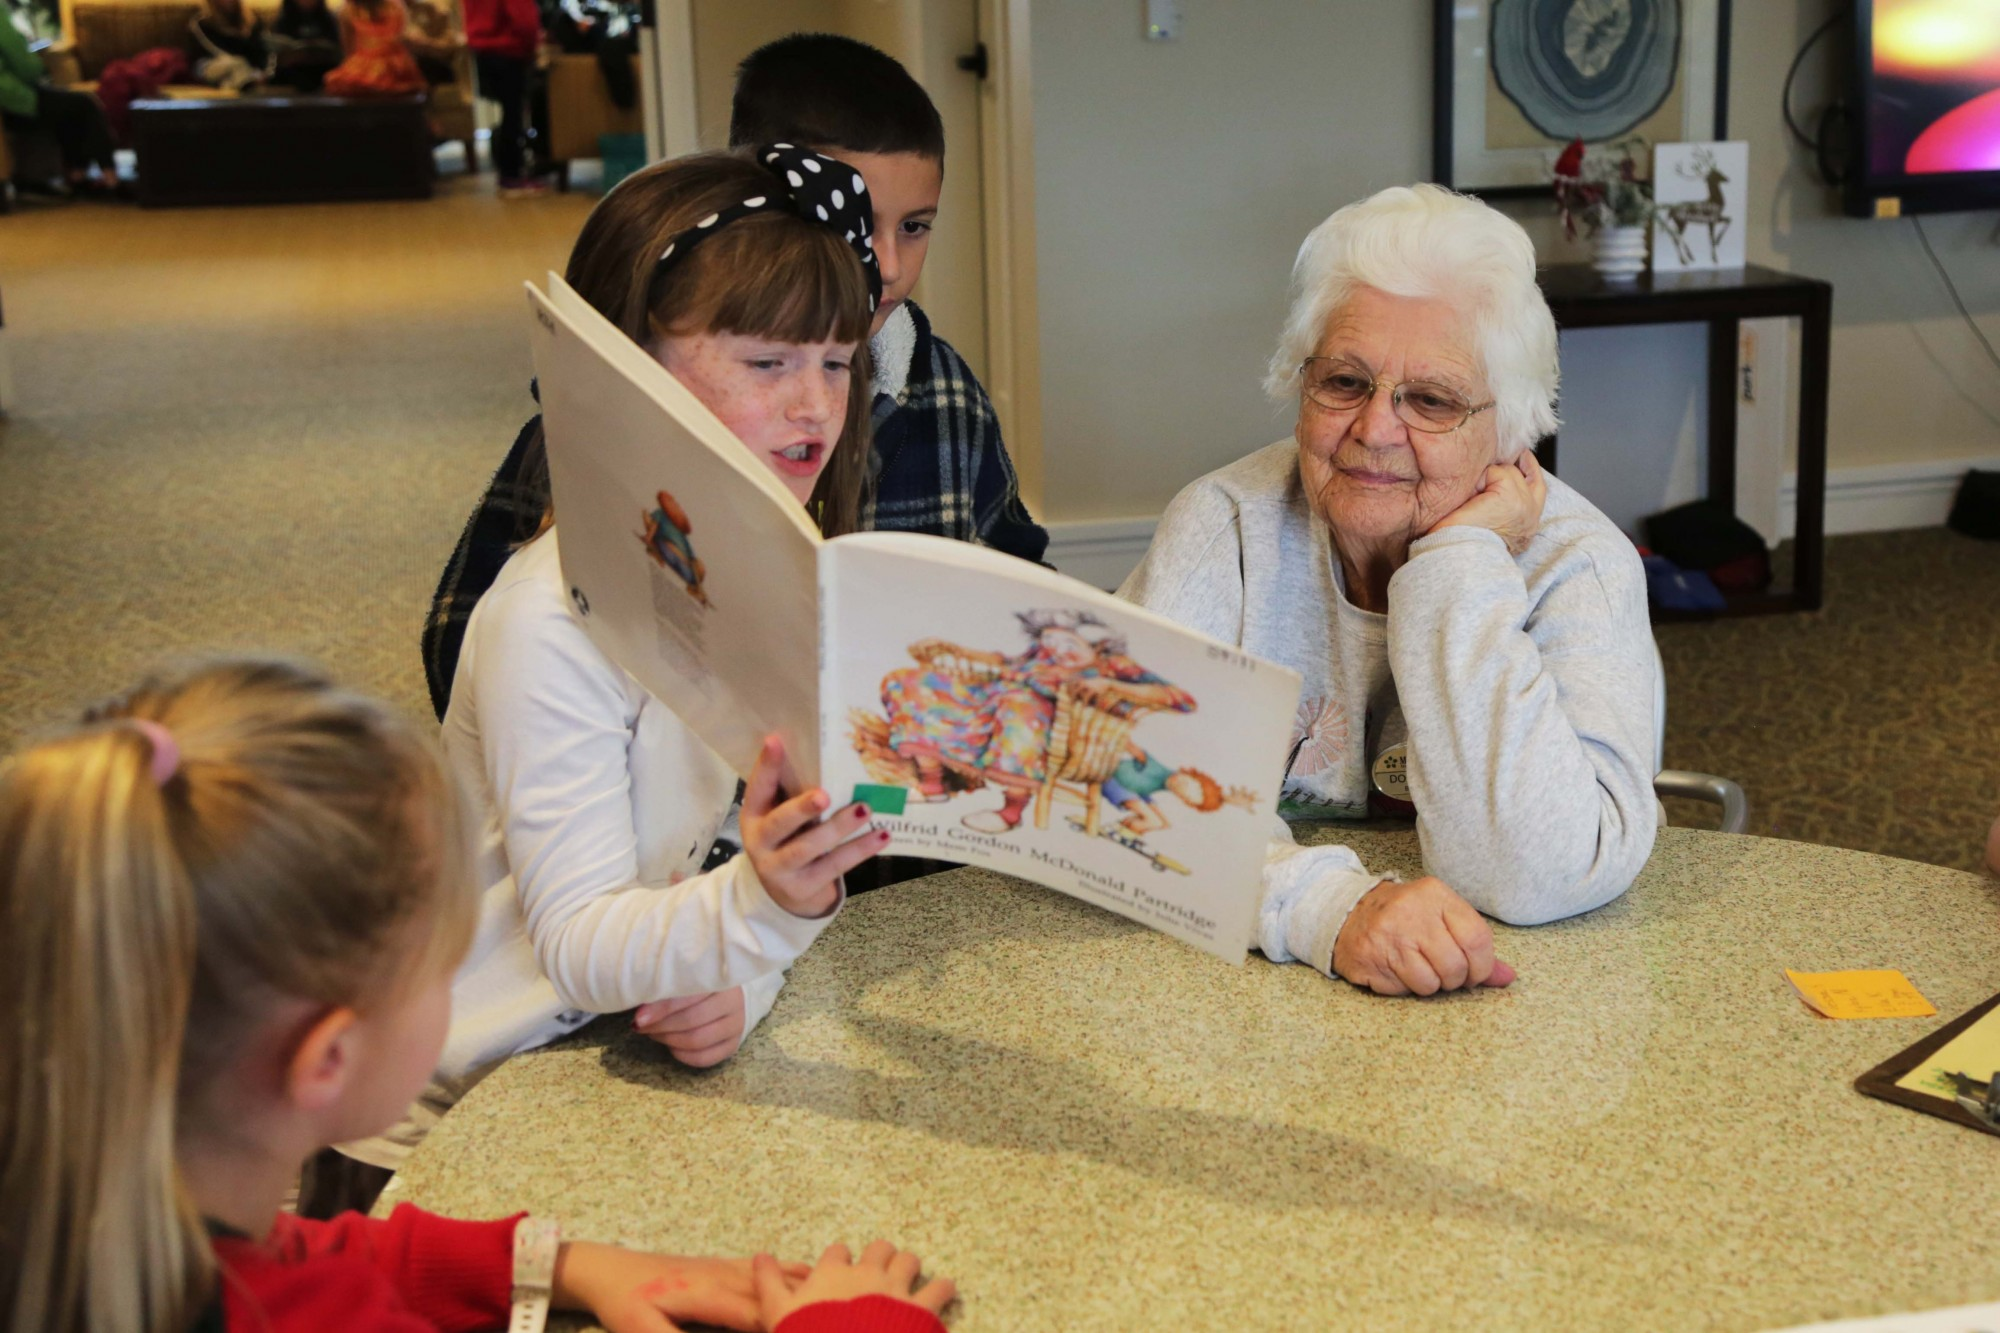 A girl from Johnson Elementary reads to a senior citizen, a resident of Morning Star Assisted Living Residential Home